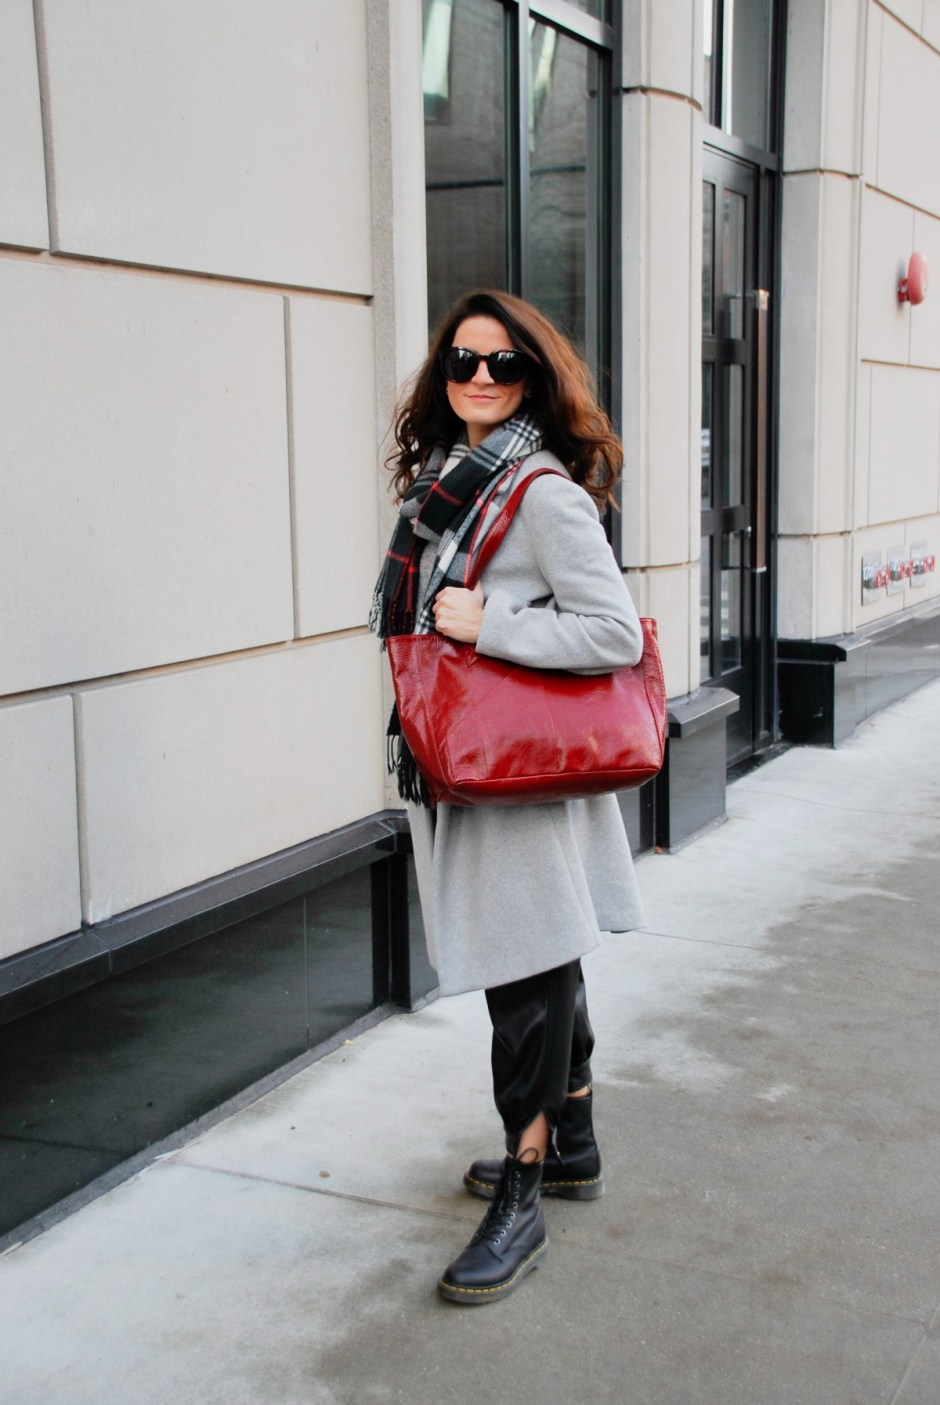 Gray coat and red tote